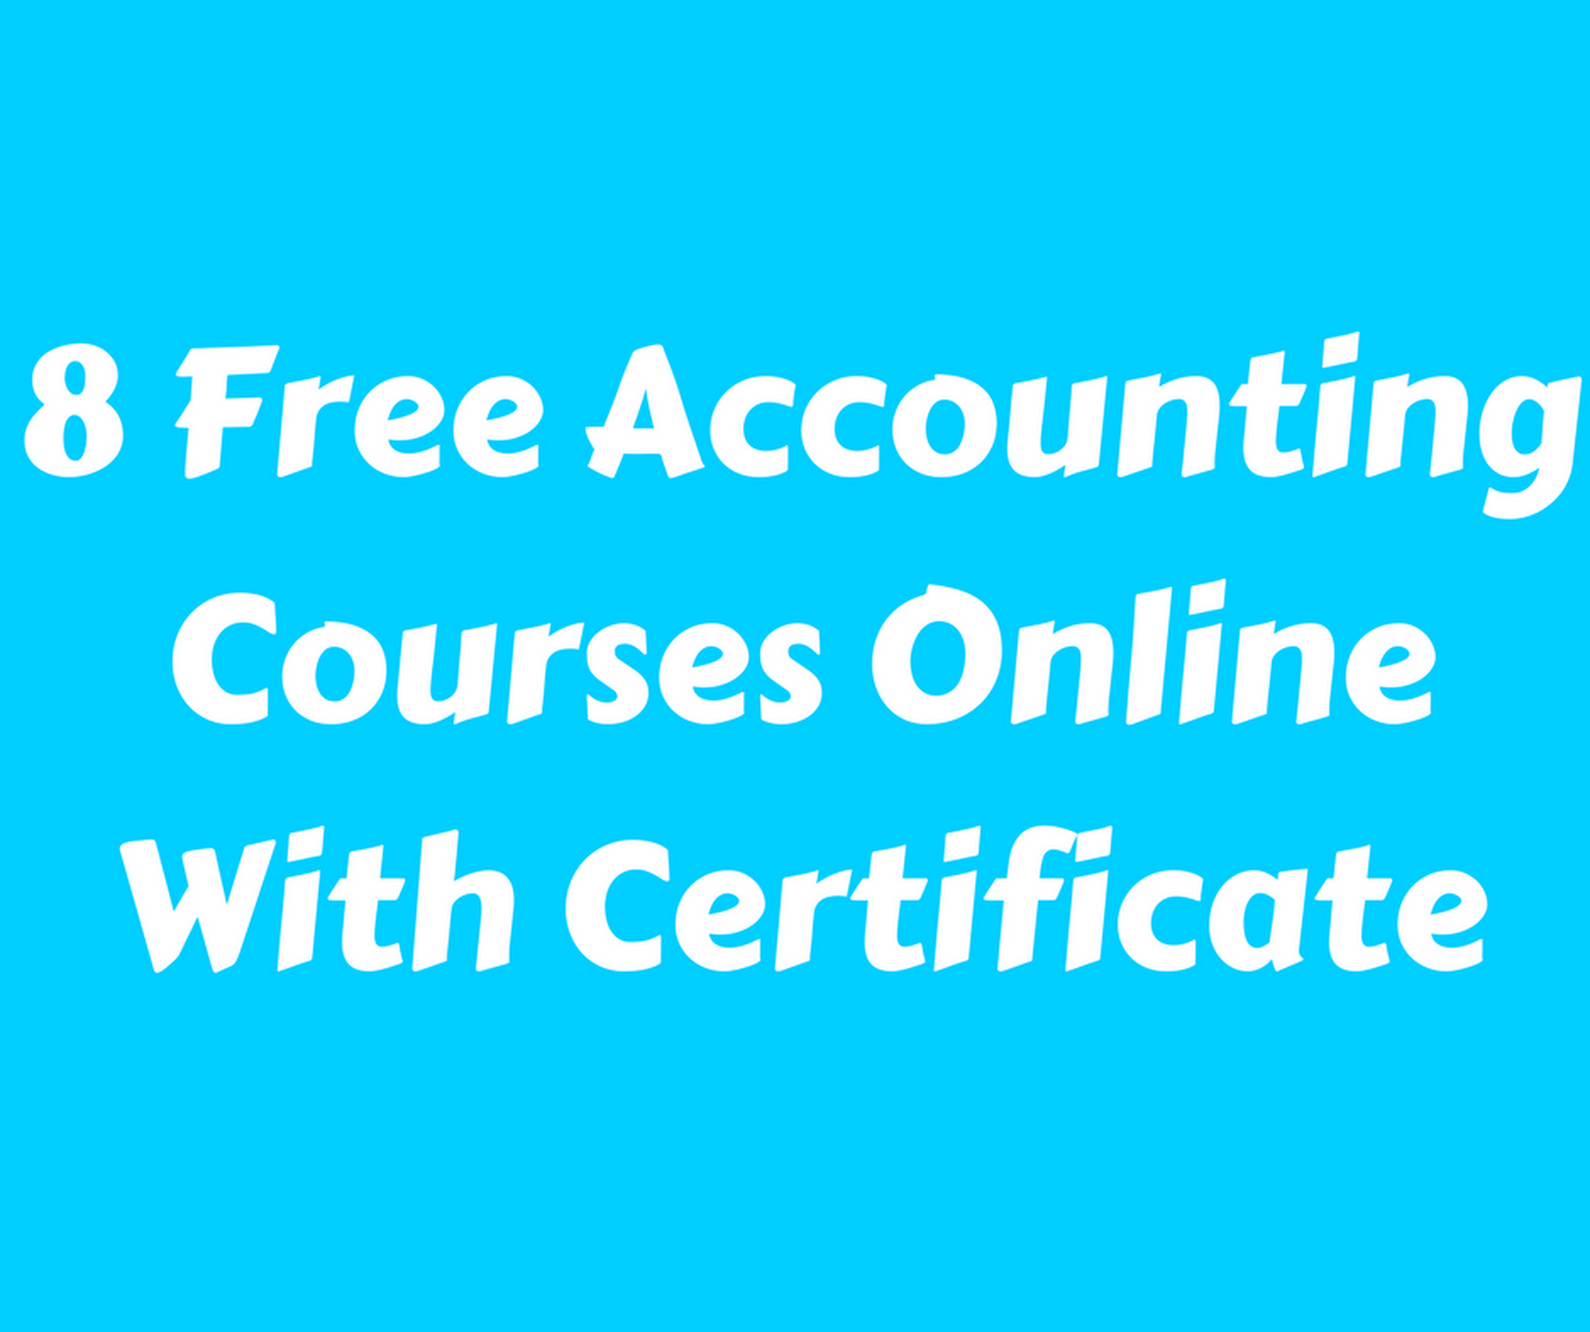 8 Free Accounting Courses Online With Certificate